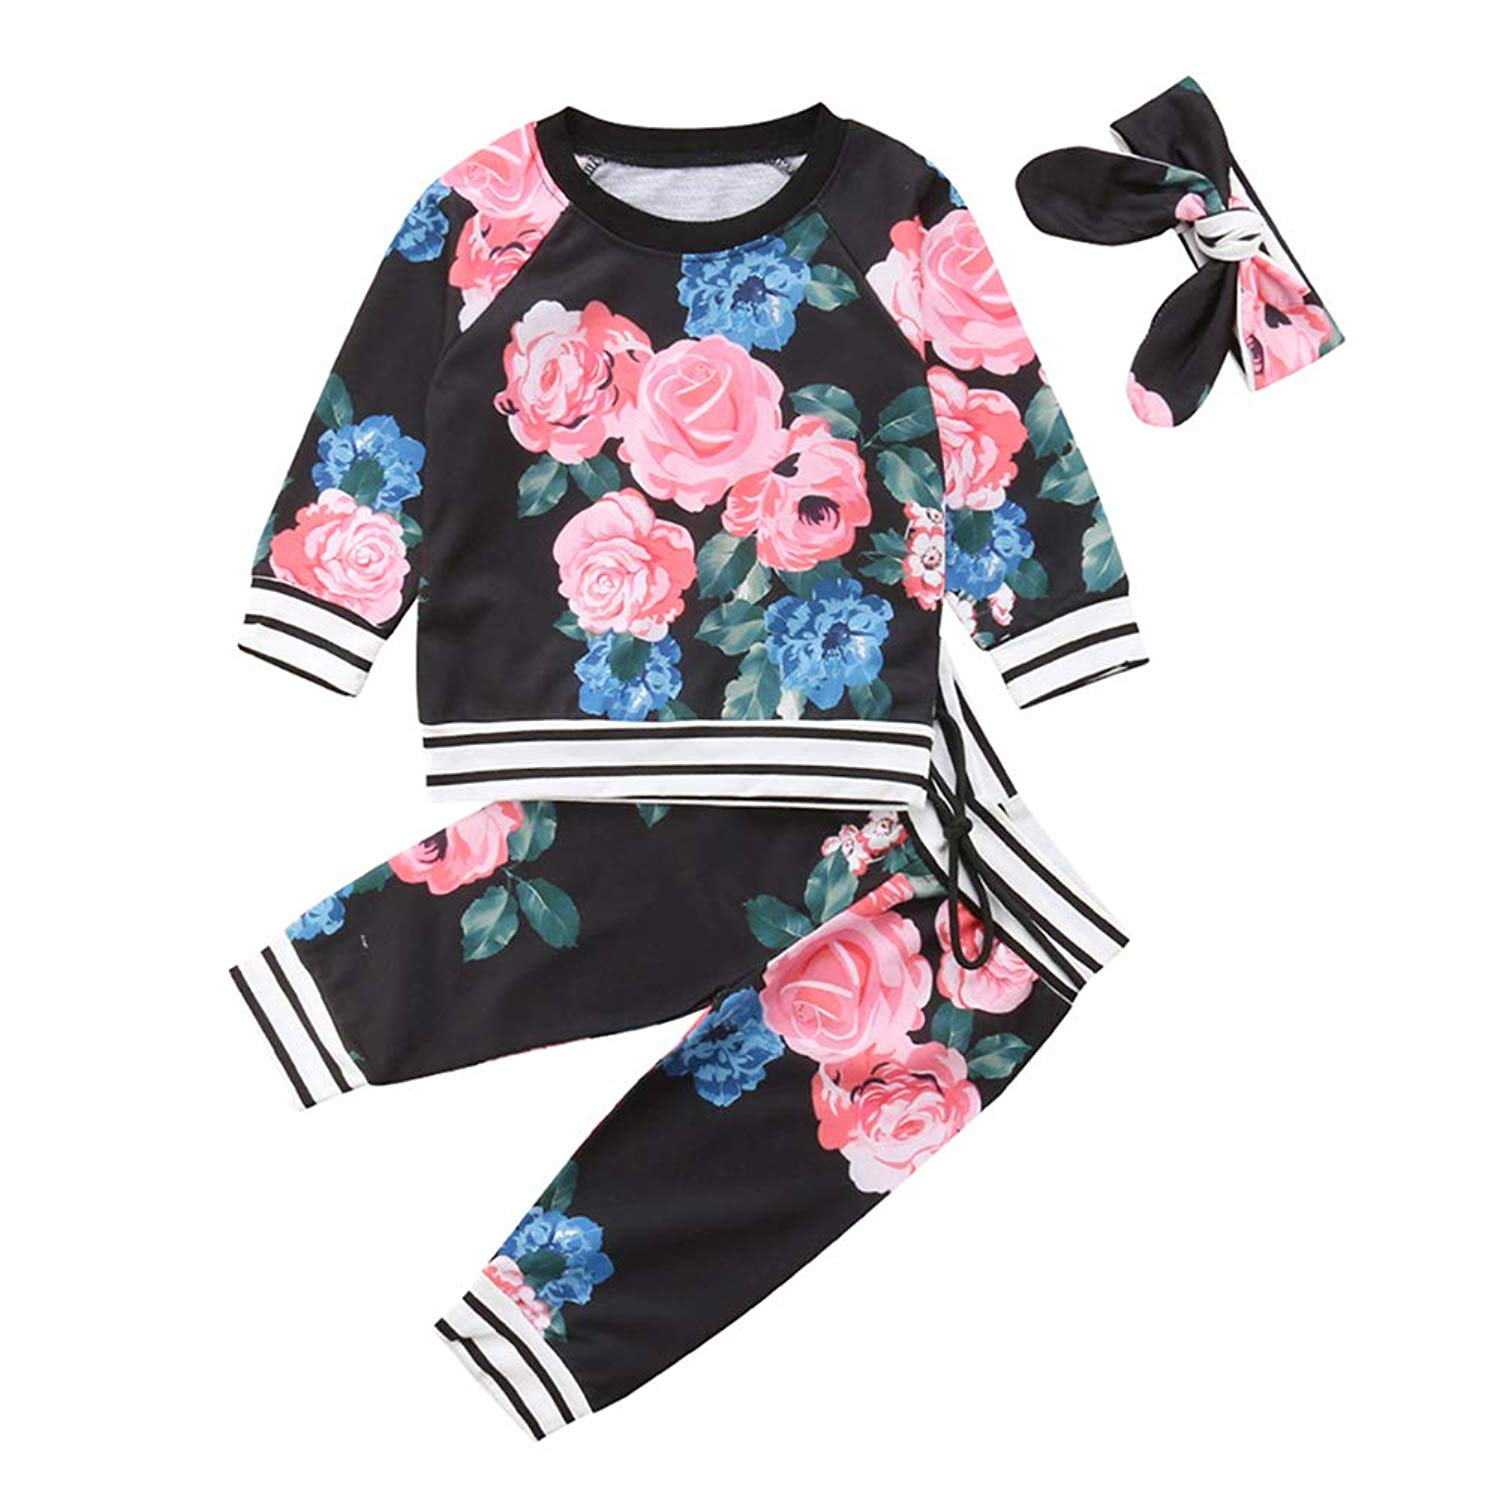 84aeeb09fd94 Get Quotations · DY coperate Newborn Baby Girl Long Sleeve Floral Tops +  Floral Pants Headband Outfit Pullover Sweatshit